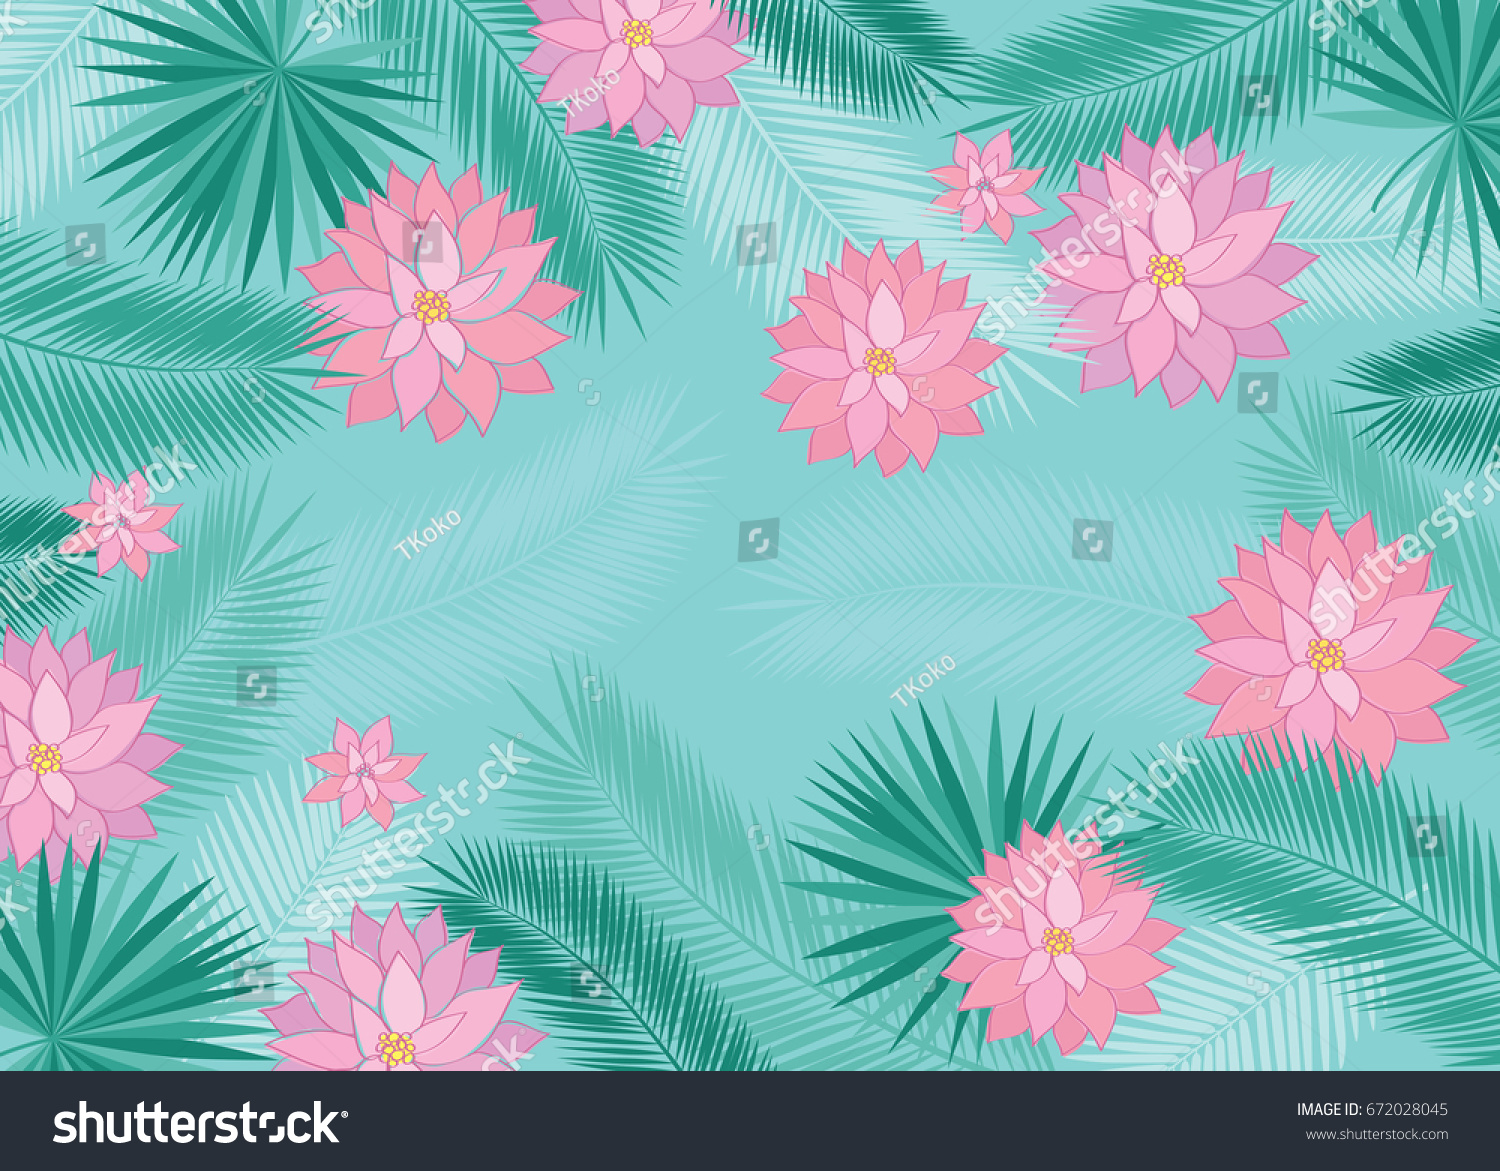 Summer Background Tropical Leaves Pink Flowers Stock Vector Royalty